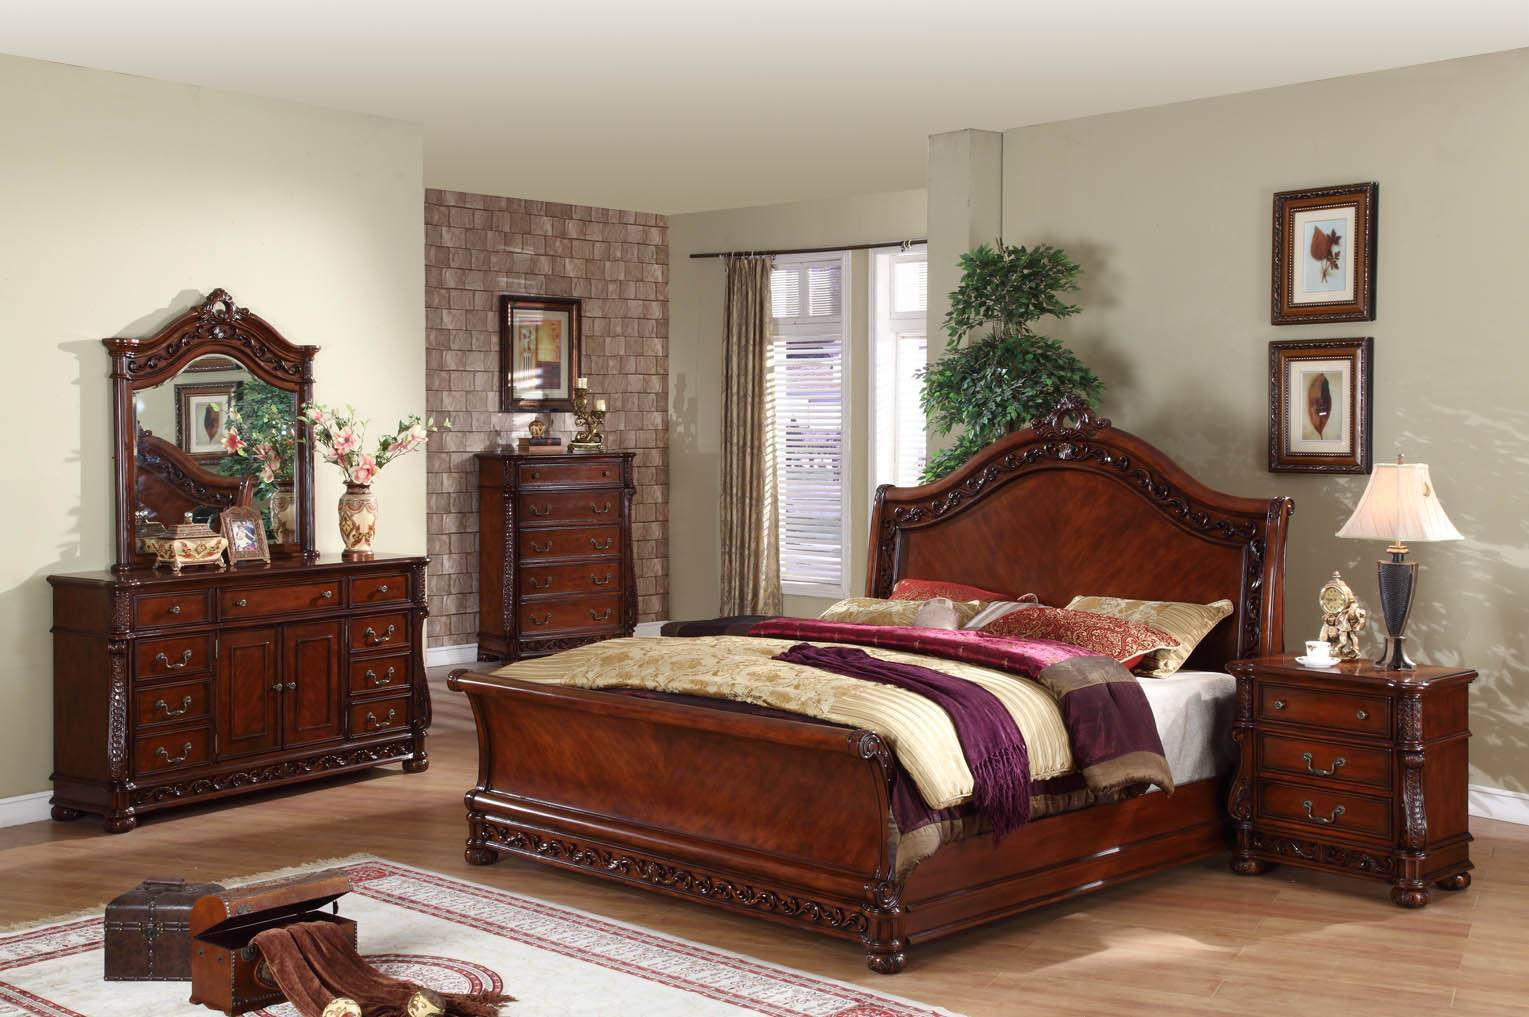 Images of white antique bedroom furniture; white antique bedroom furniture ideas ... antique bedroom furniture